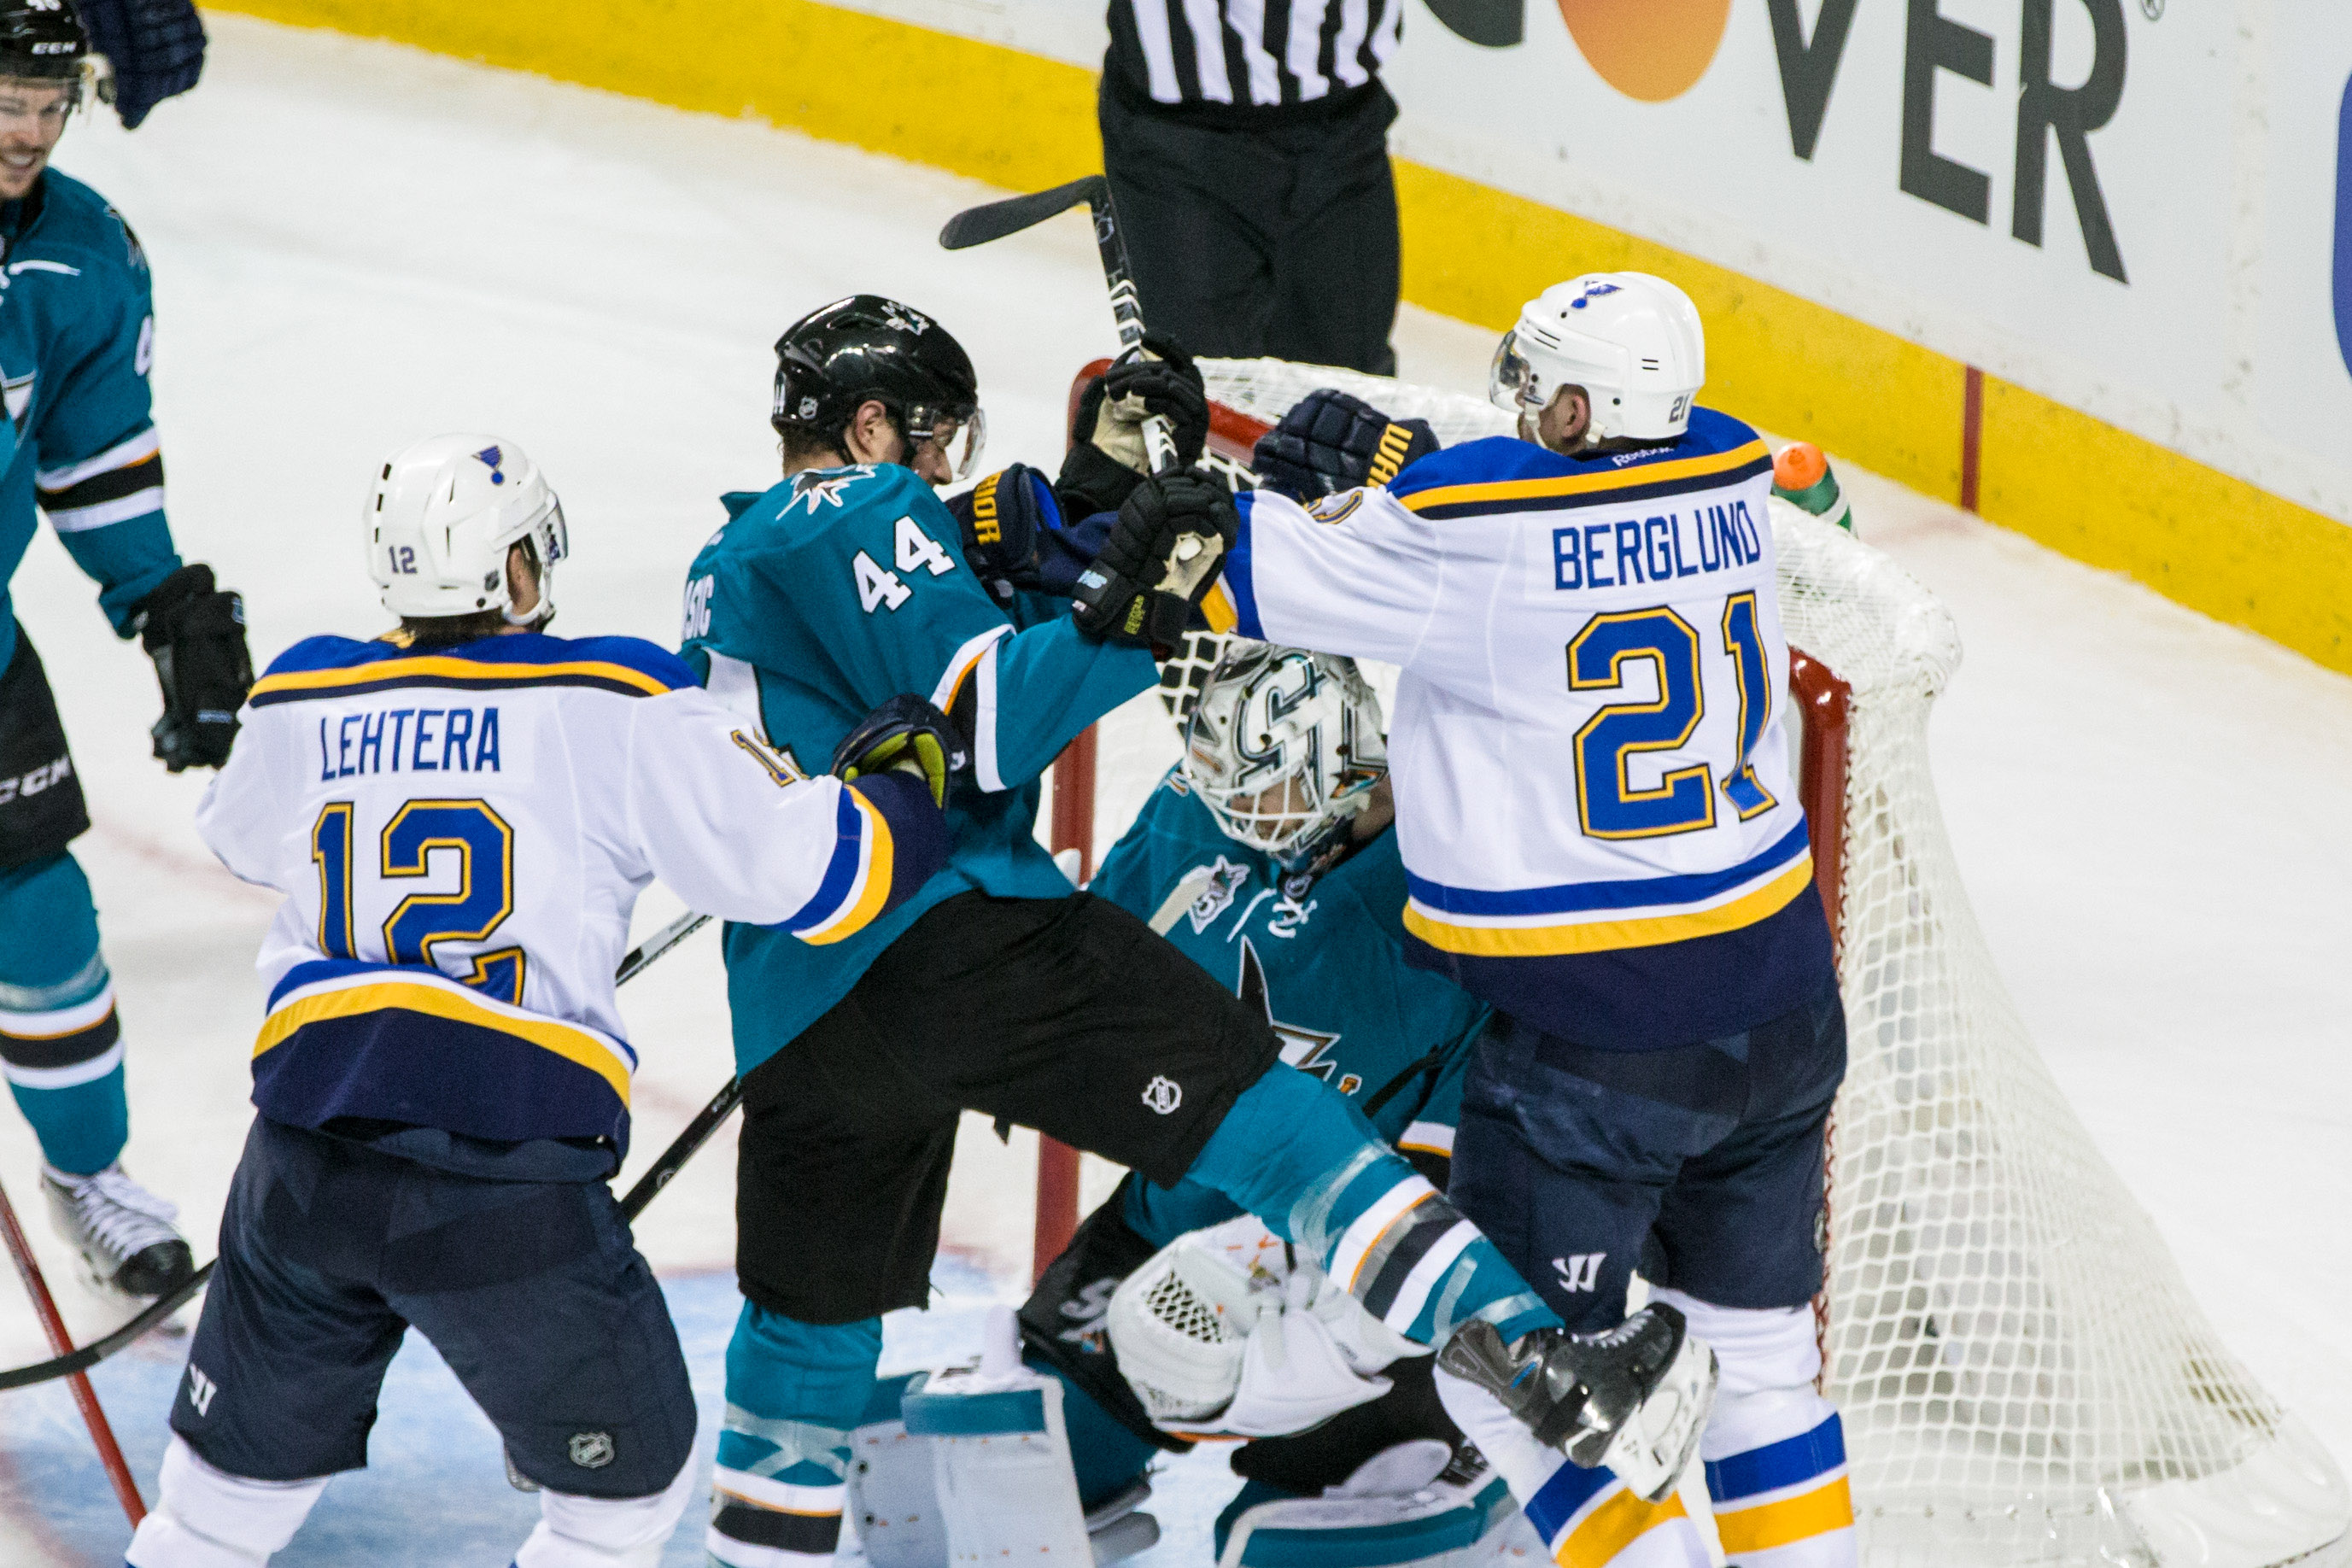 9304446-nhl-stanley-cup-playoffs-st.-louis-blues-at-san-jose-sharks